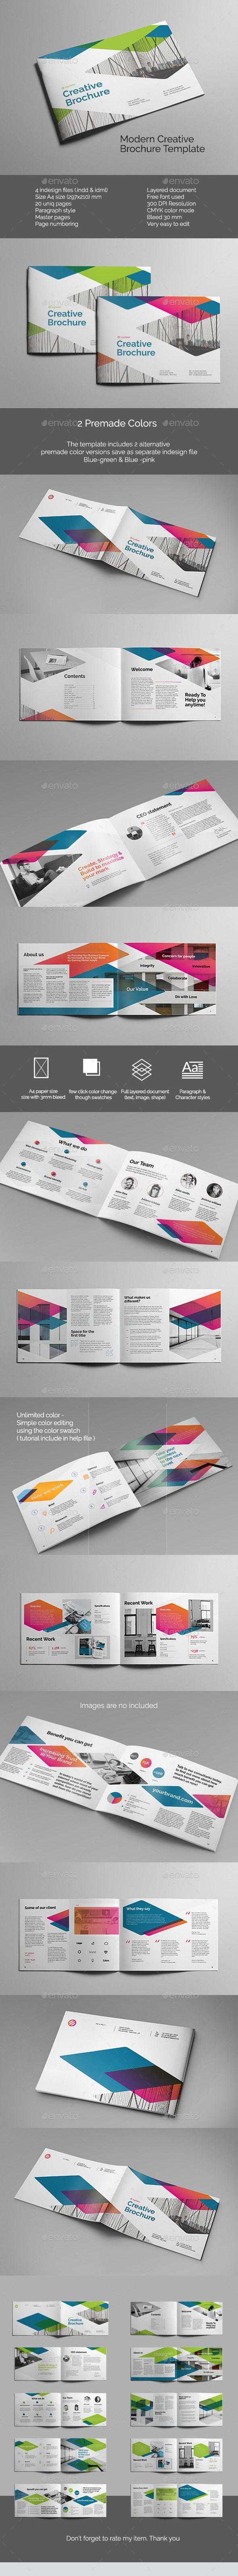 Modern Creative Brochure Template InDesign INDD #design Download: http://graphicriver.net/item/modern-creative-brochure/13465167?ref=ksioks